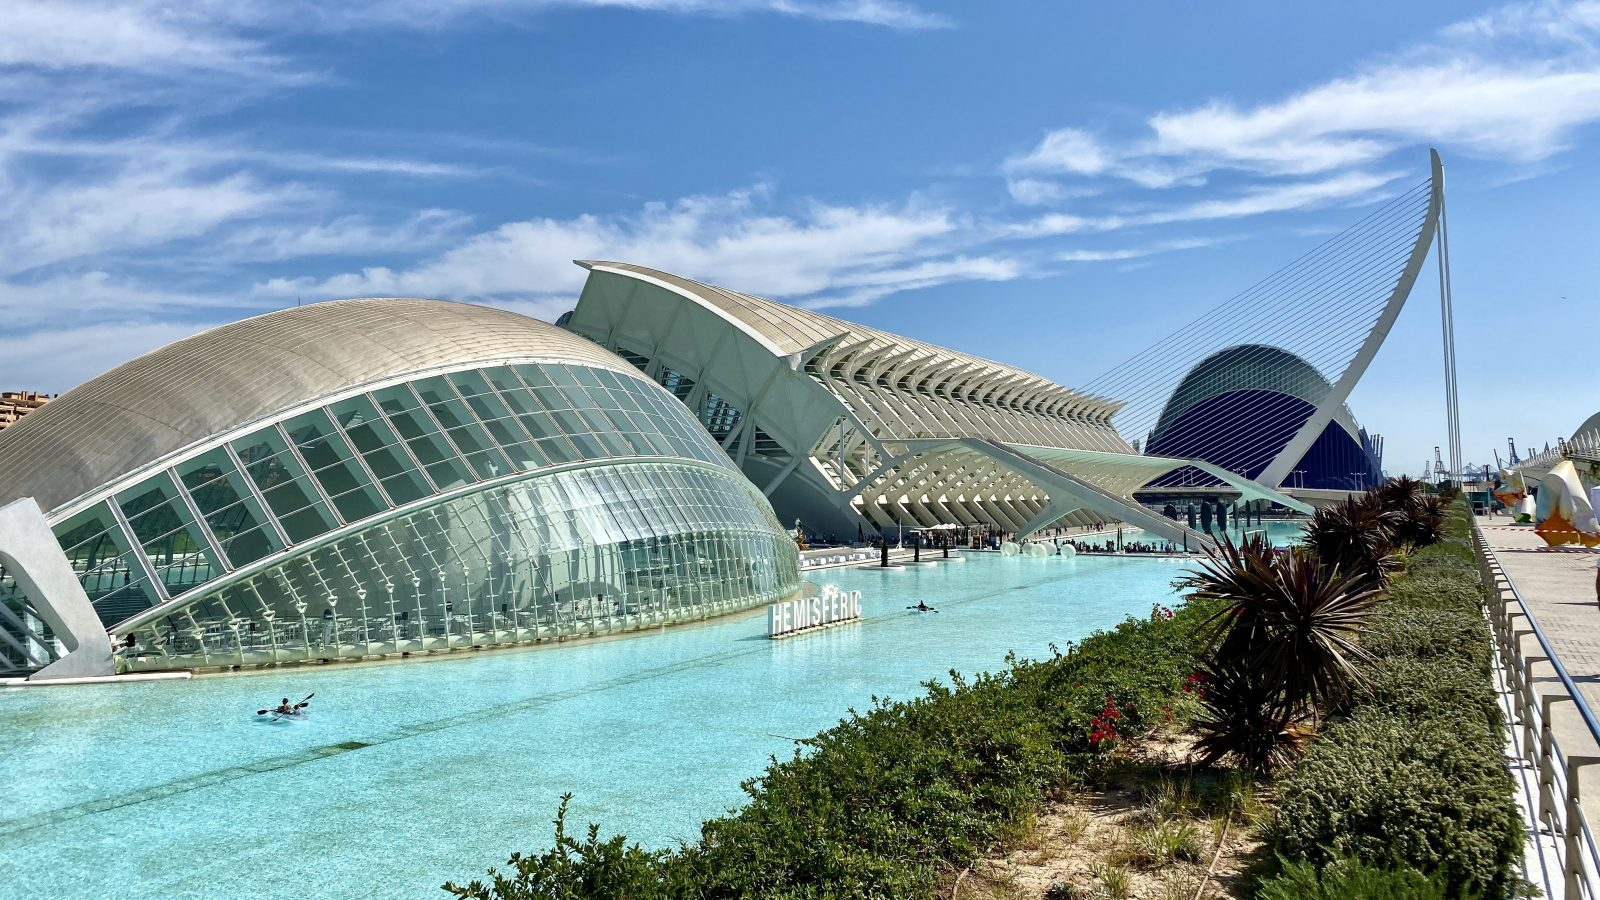 Valencia: The Luster of Spain's Third-Largest City Illuminated (Part 2 of 3): Artistry + Progress